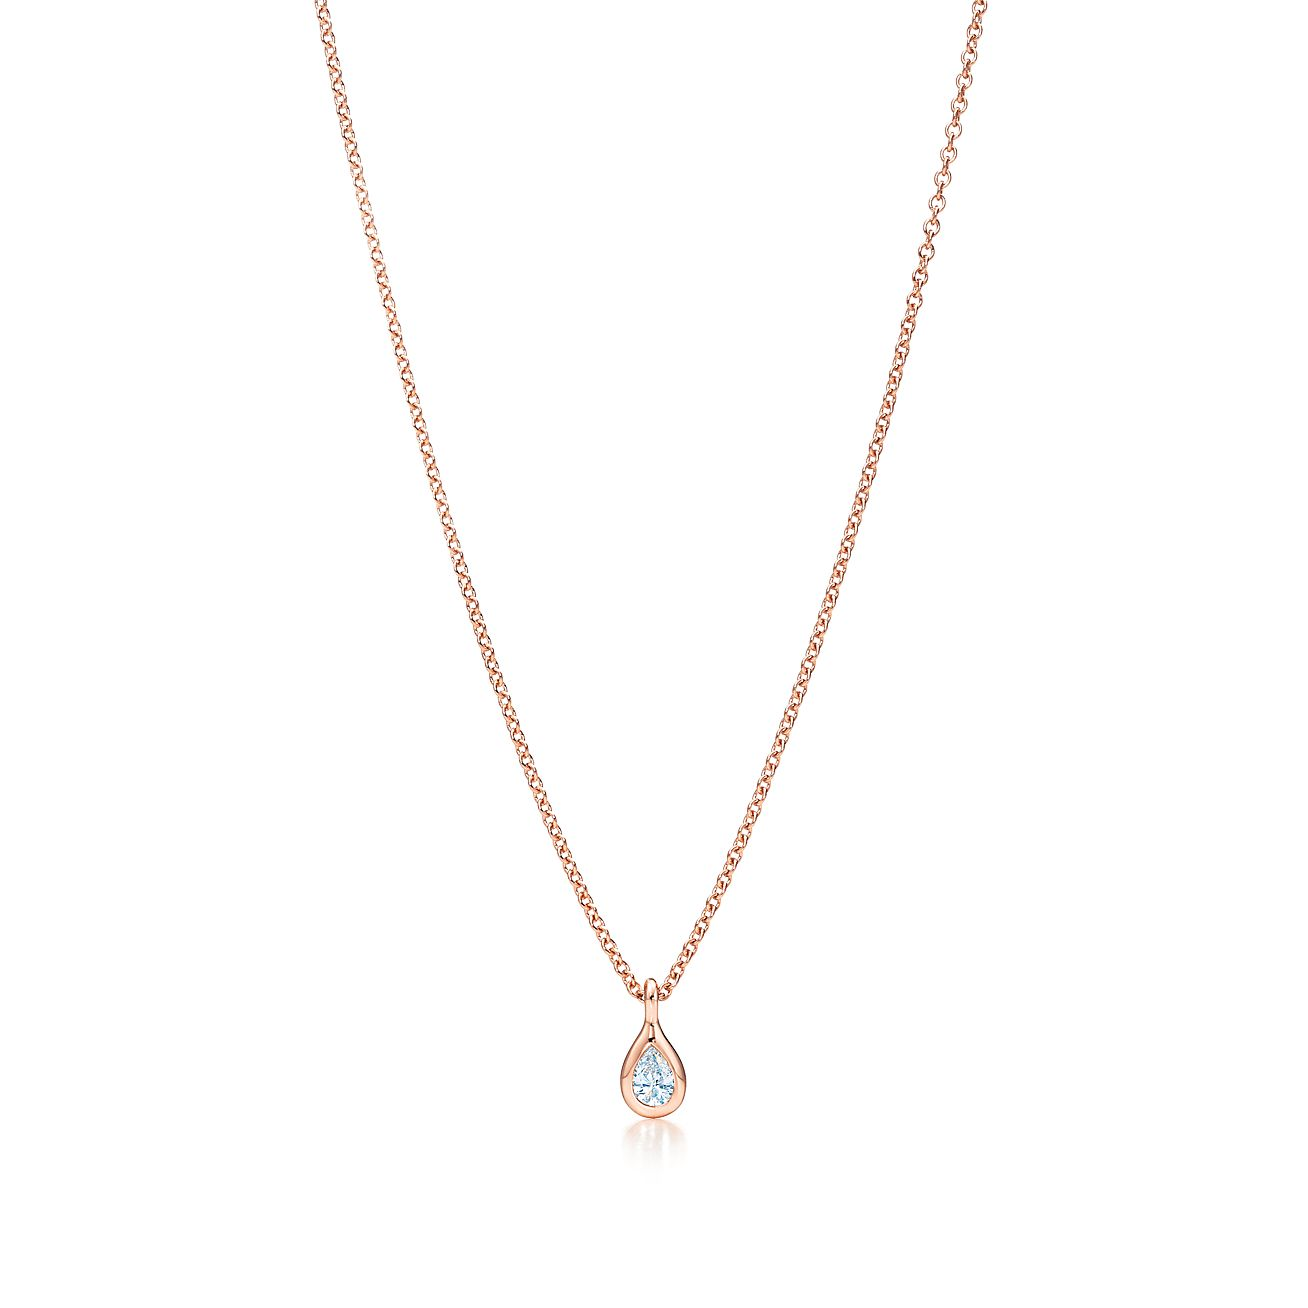 Elsa Peretti Diamonds by the Yard pendant in 18k rose gold - Size.17 Tiffany & Co.